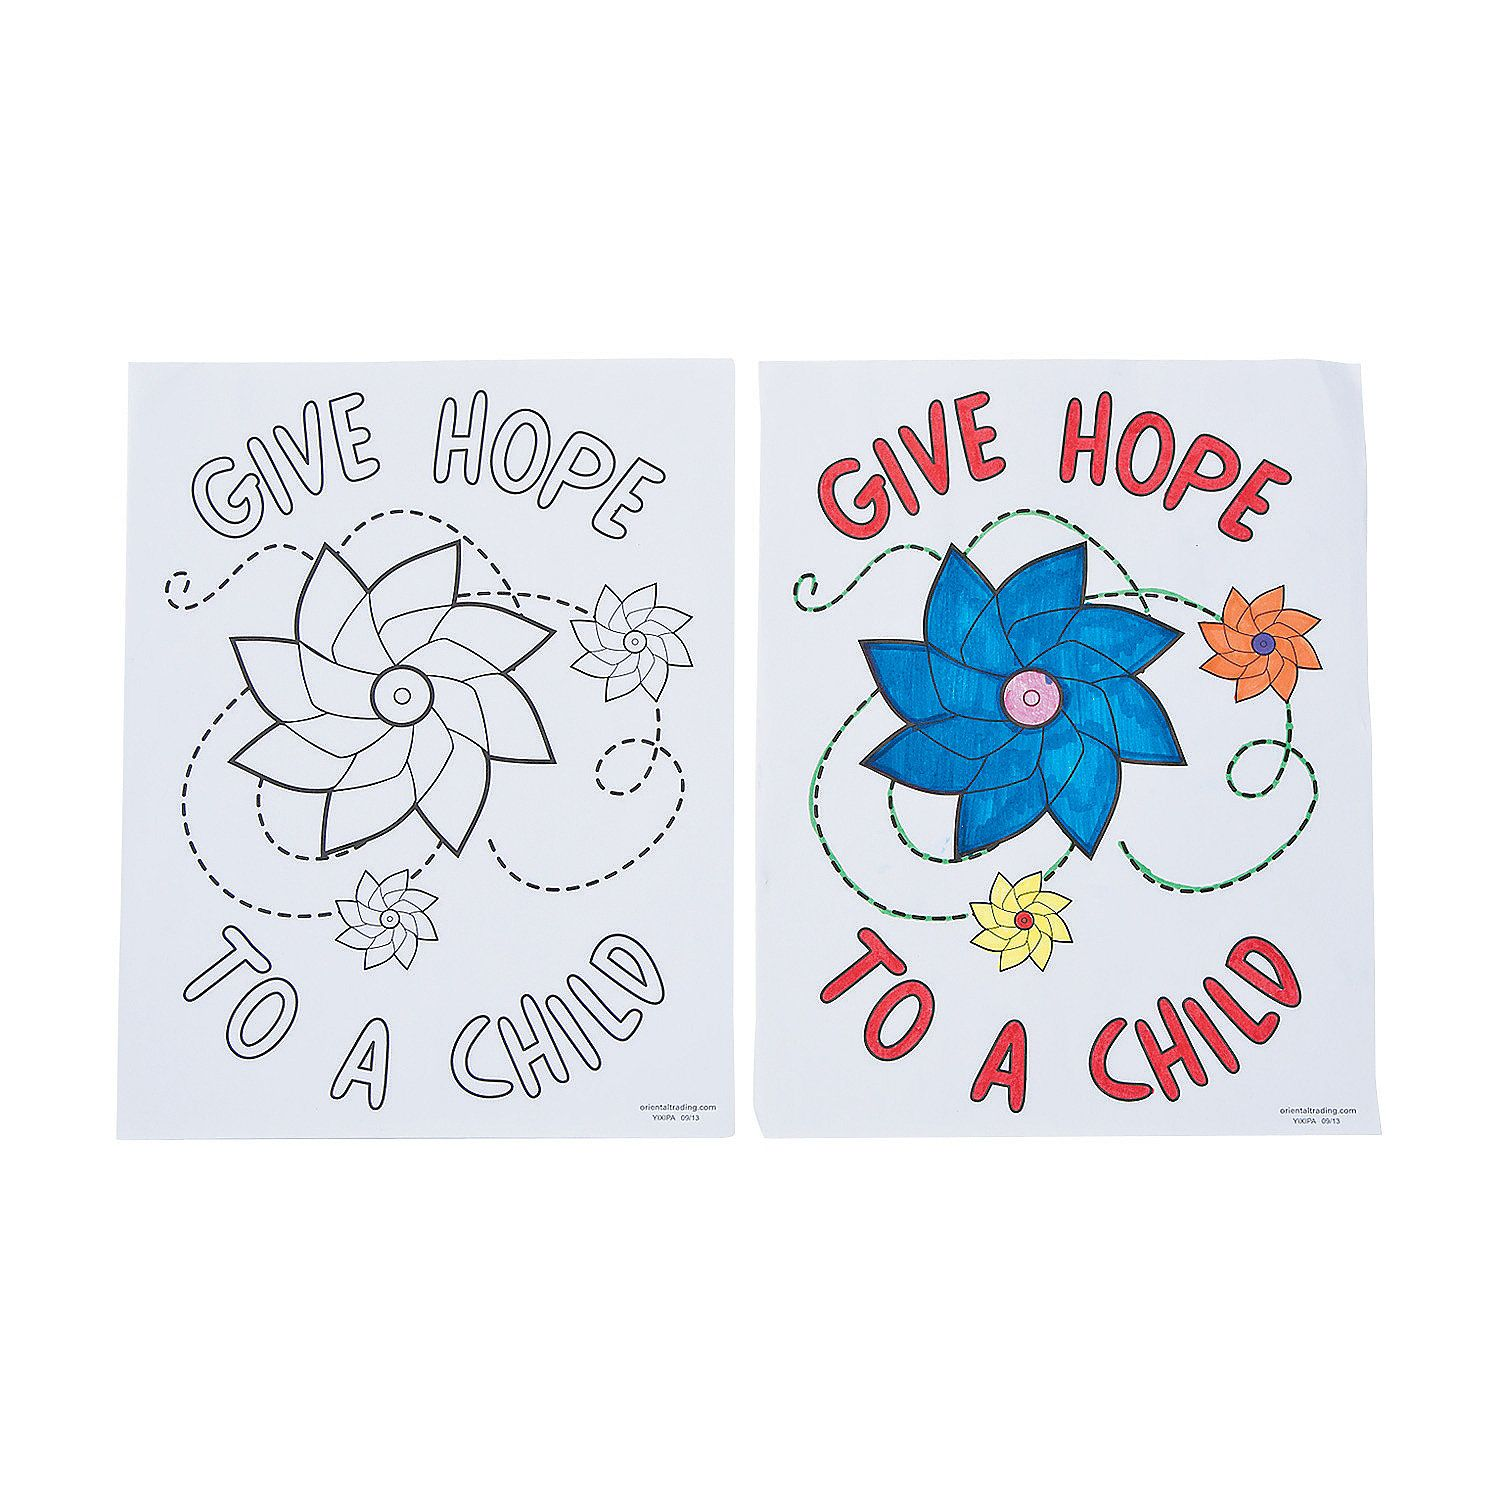 Coloring Pages For Child Abuse Prevention